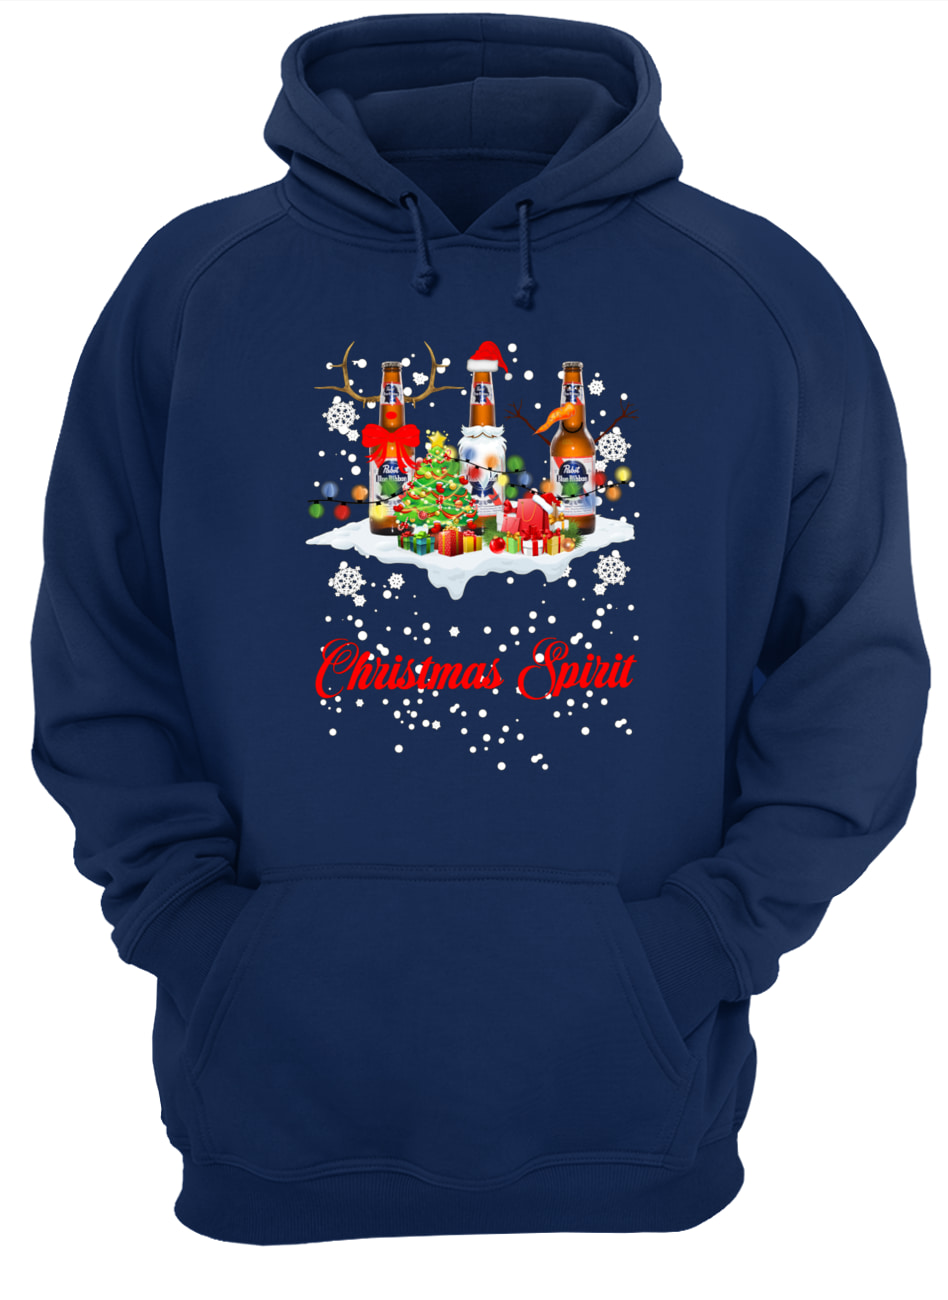 Christmas spirit pabst blue ribbon hoodie